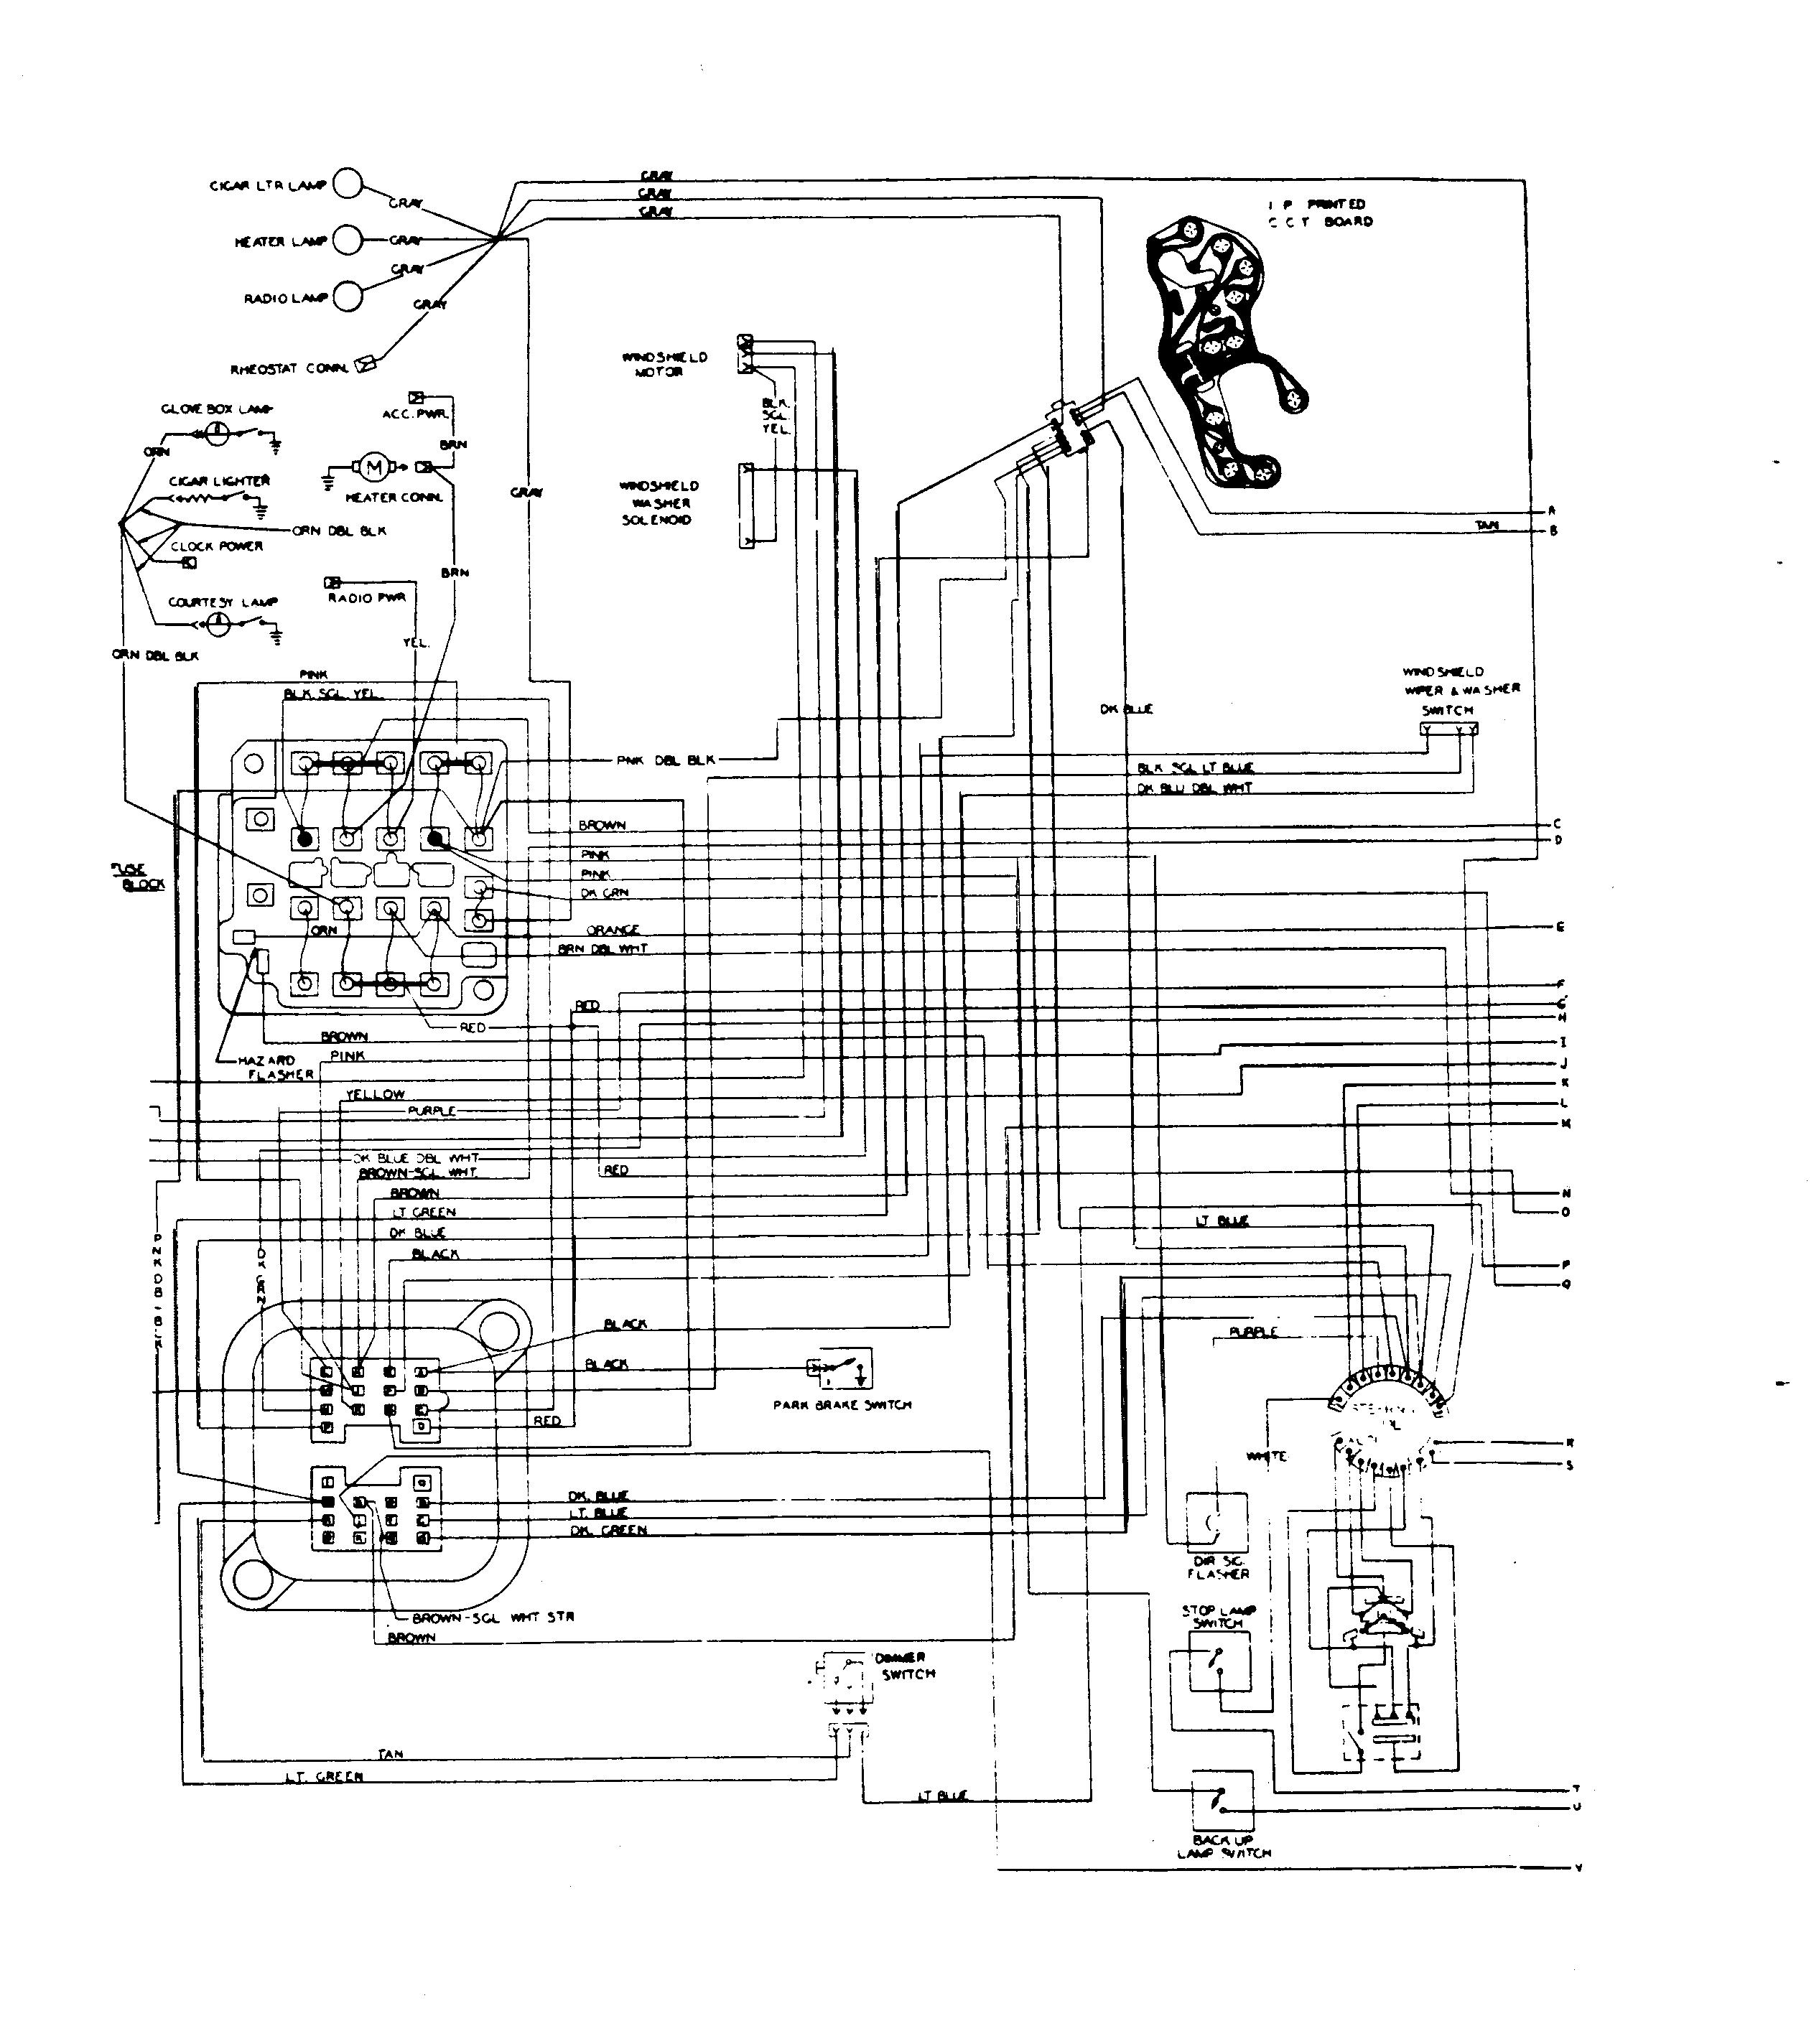 Tach Wire Diagram Tachometer Wiring For Motorcycle Electrical 1966 Gto Auto Schematic Pontiac Home Diagrams